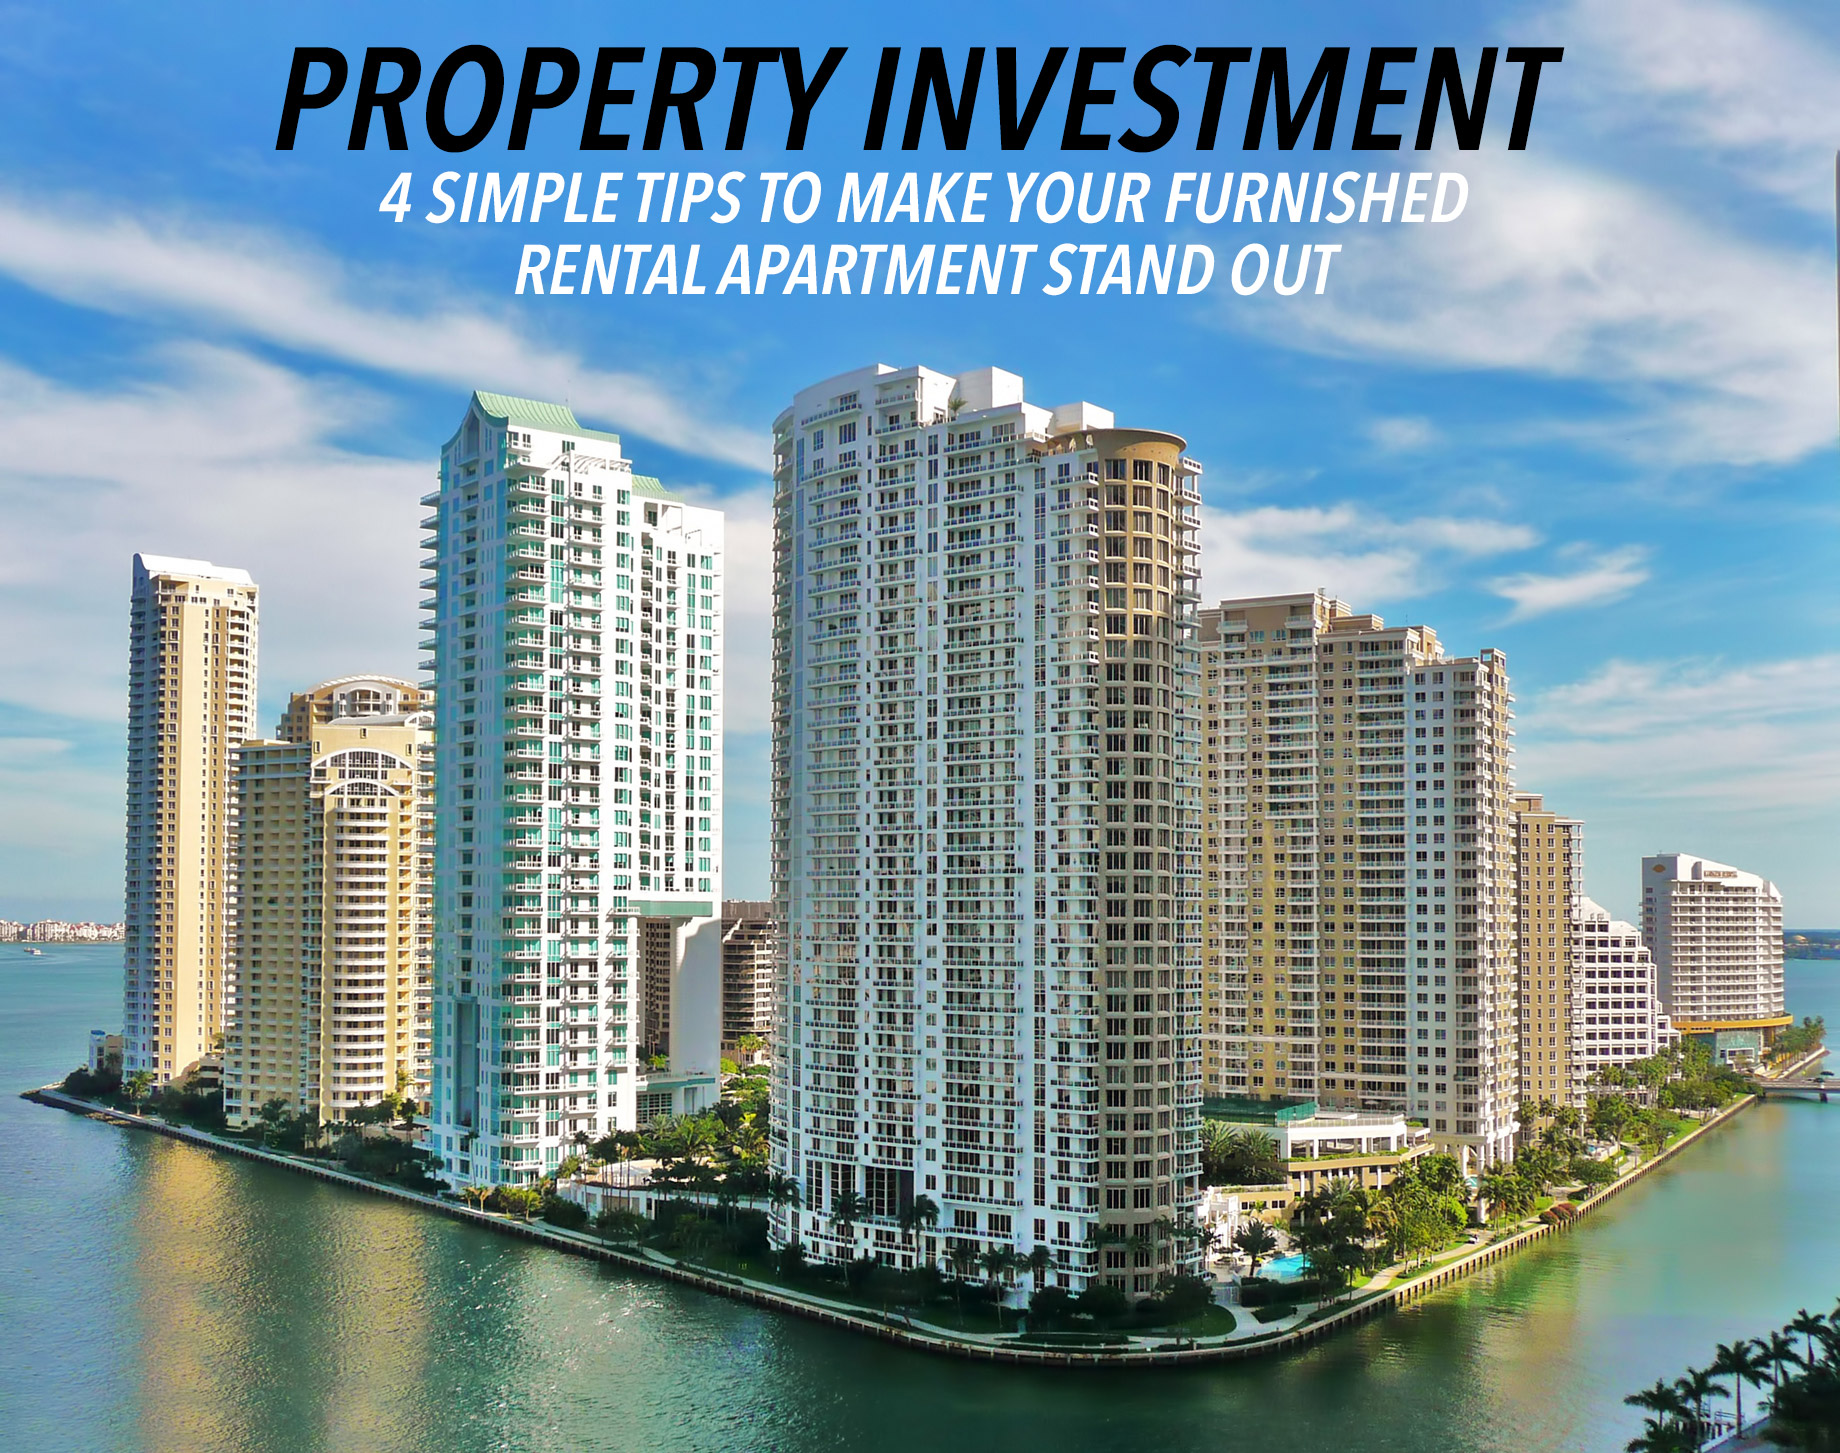 Property Investment - 4 Simple Tips to Make Your Furnished Rental Apartment Stand Out